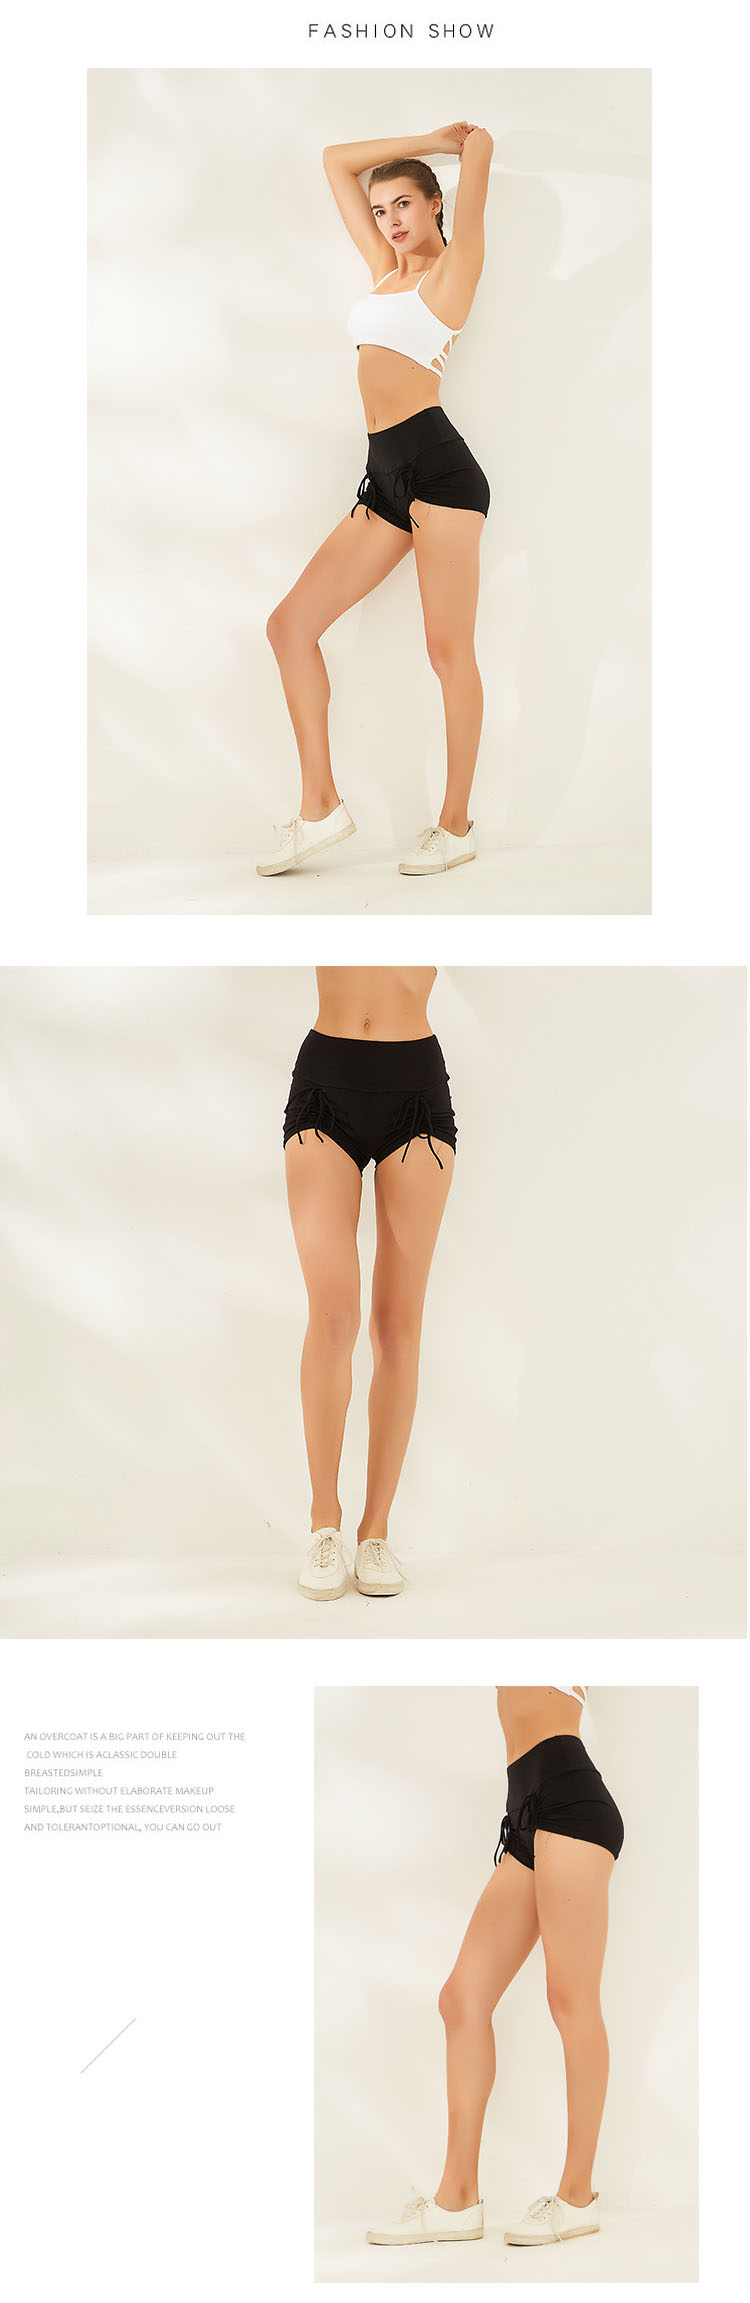 The new fit high-waist design, the hidden meat looks thin, slender and tall.